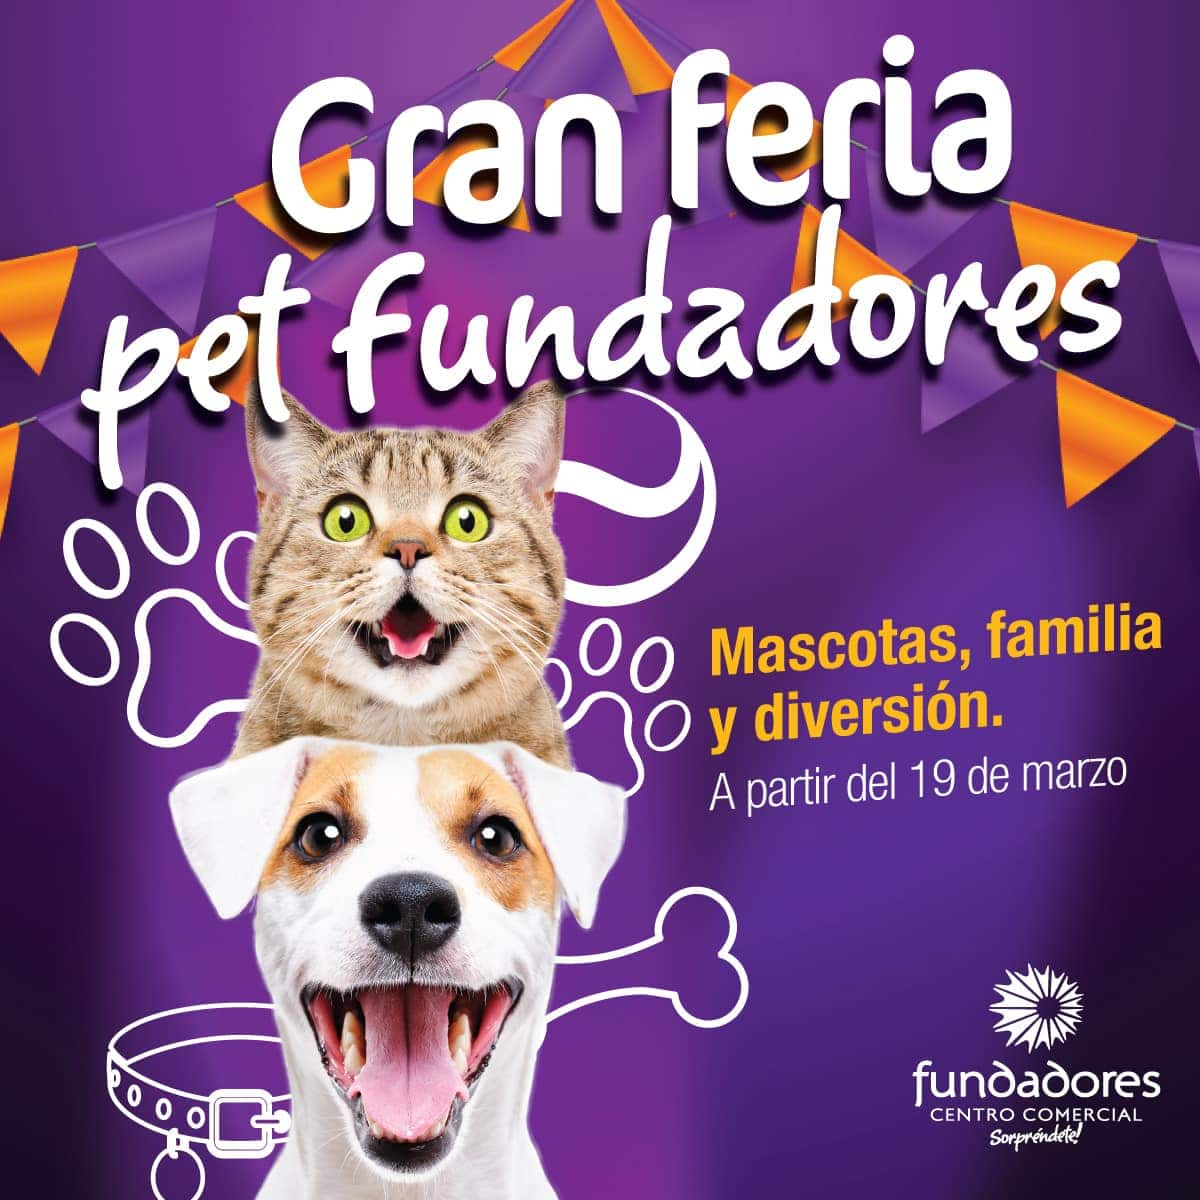 PET FUNDADORES